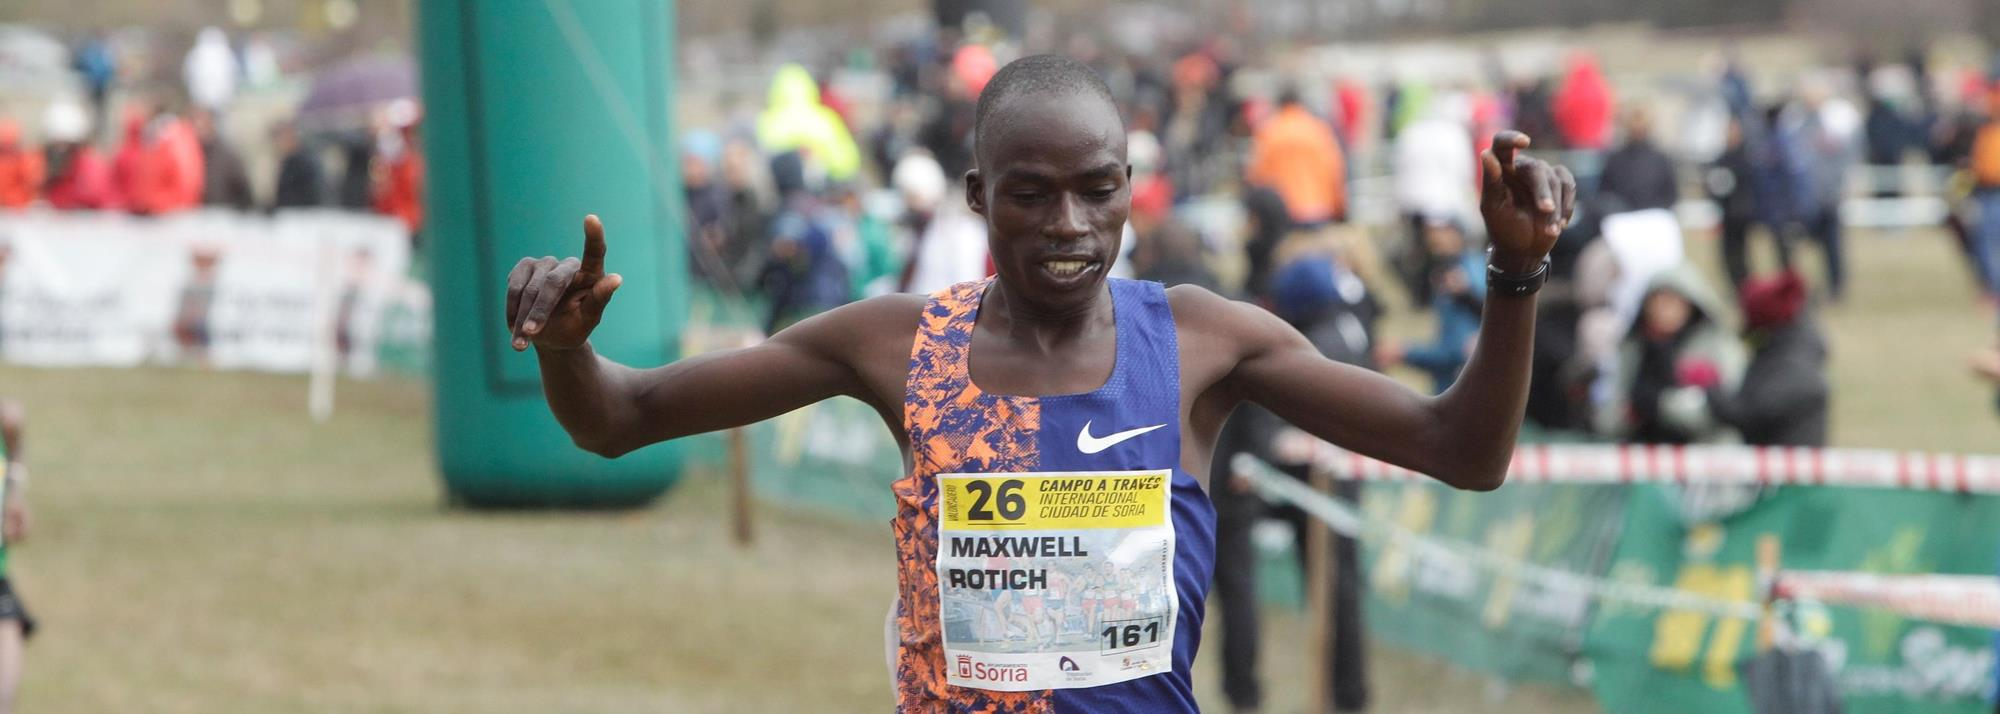 Rotich and Machado prevail in Soria